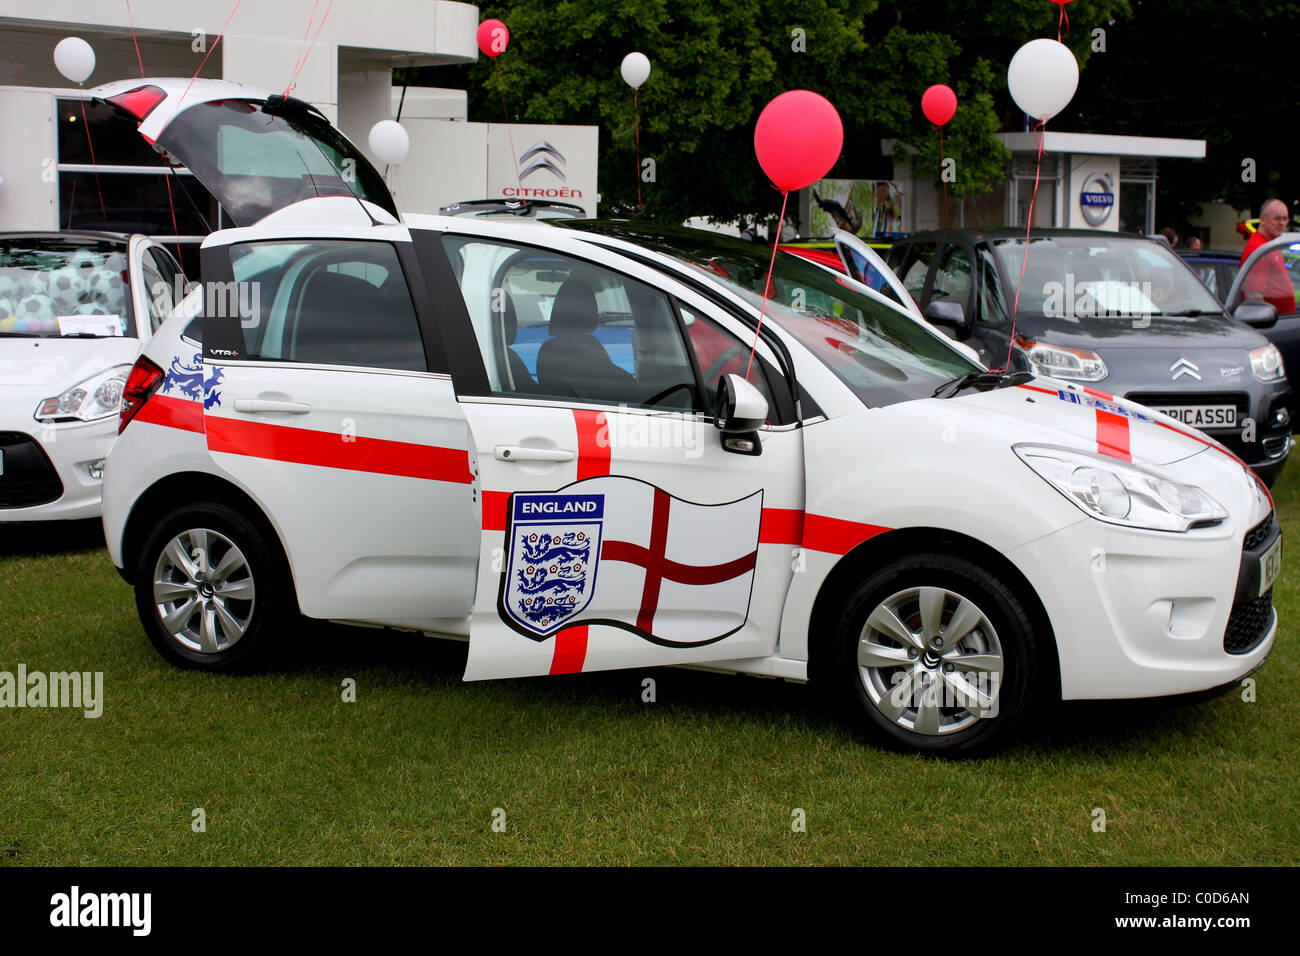 A ford fiesta at a car show event displaying the logo and symbol a ford fiesta at a car show event displaying the logo and symbol of the three lions and british red cross flag for the football biocorpaavc Choice Image